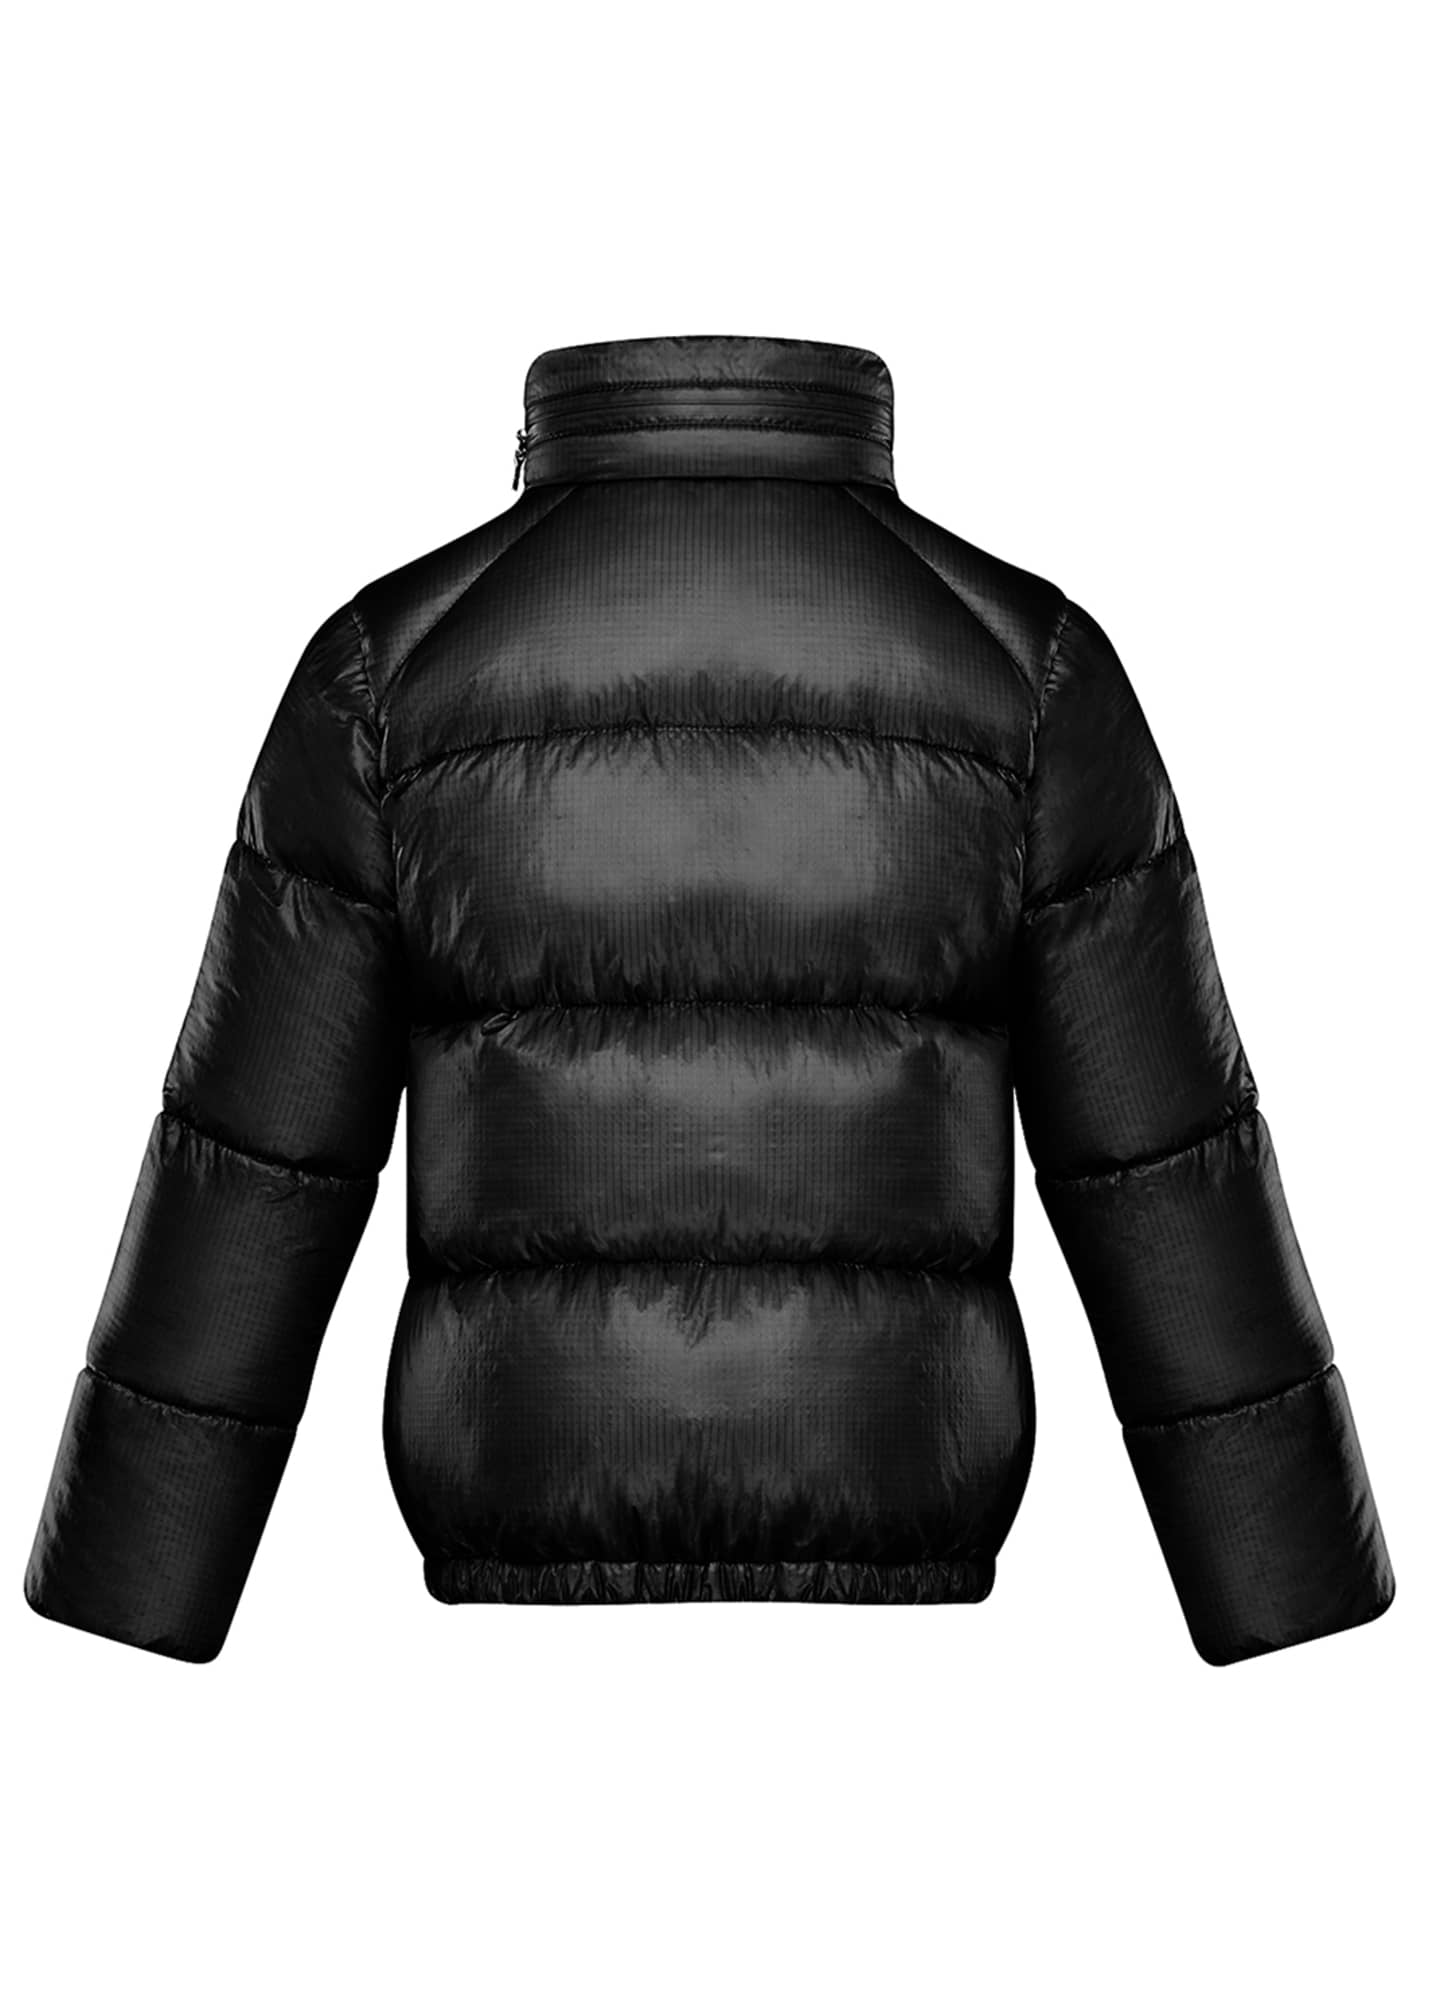 Image 2 of 2: Hortensia Nylon Ribstop Jacket Sizes 8-14